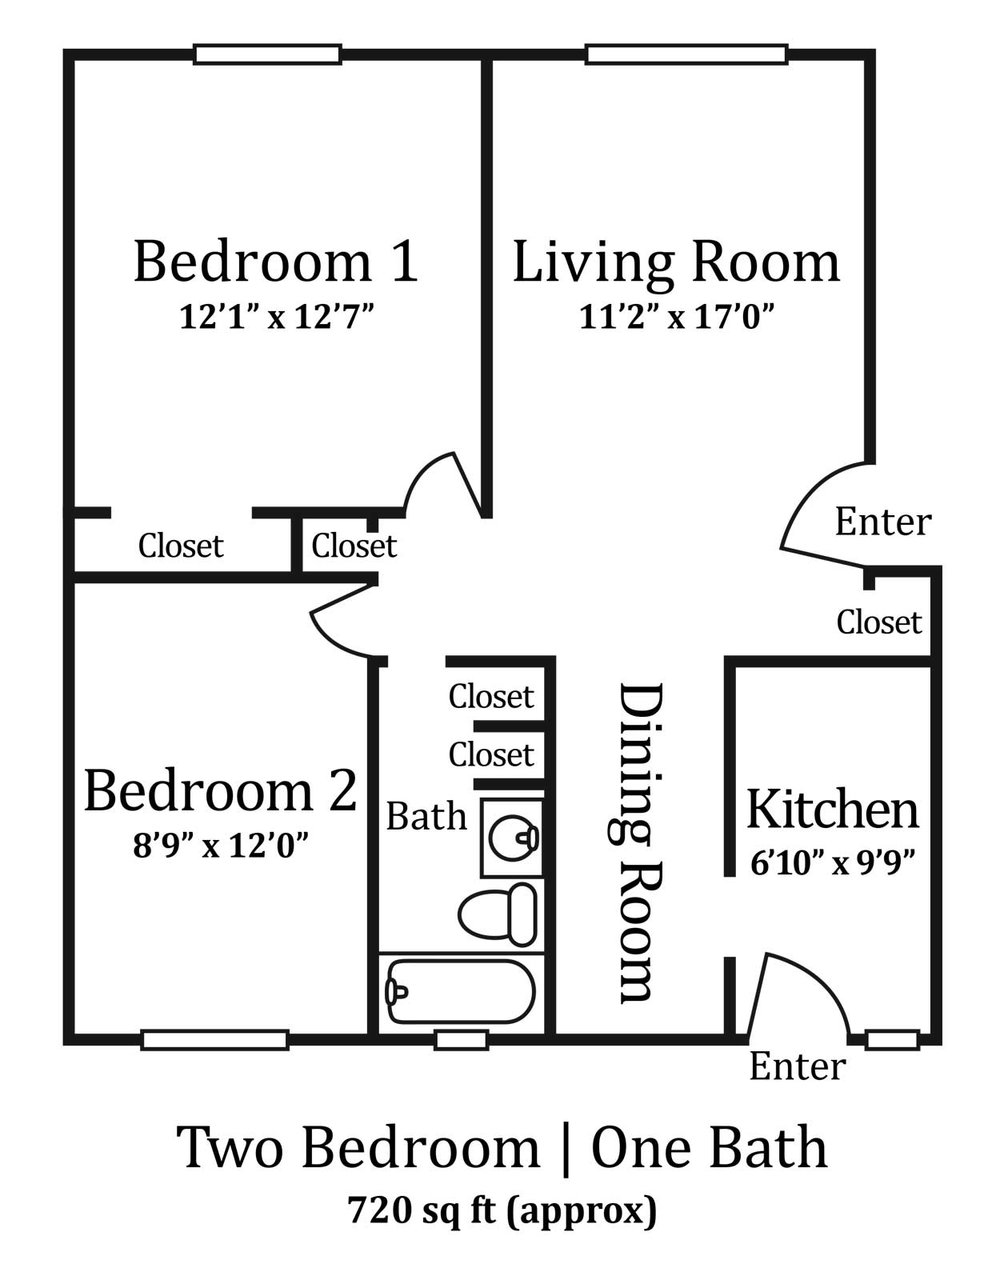 Marine-Gardens-Two-Bedroom-A-Floor-Plan.jpg